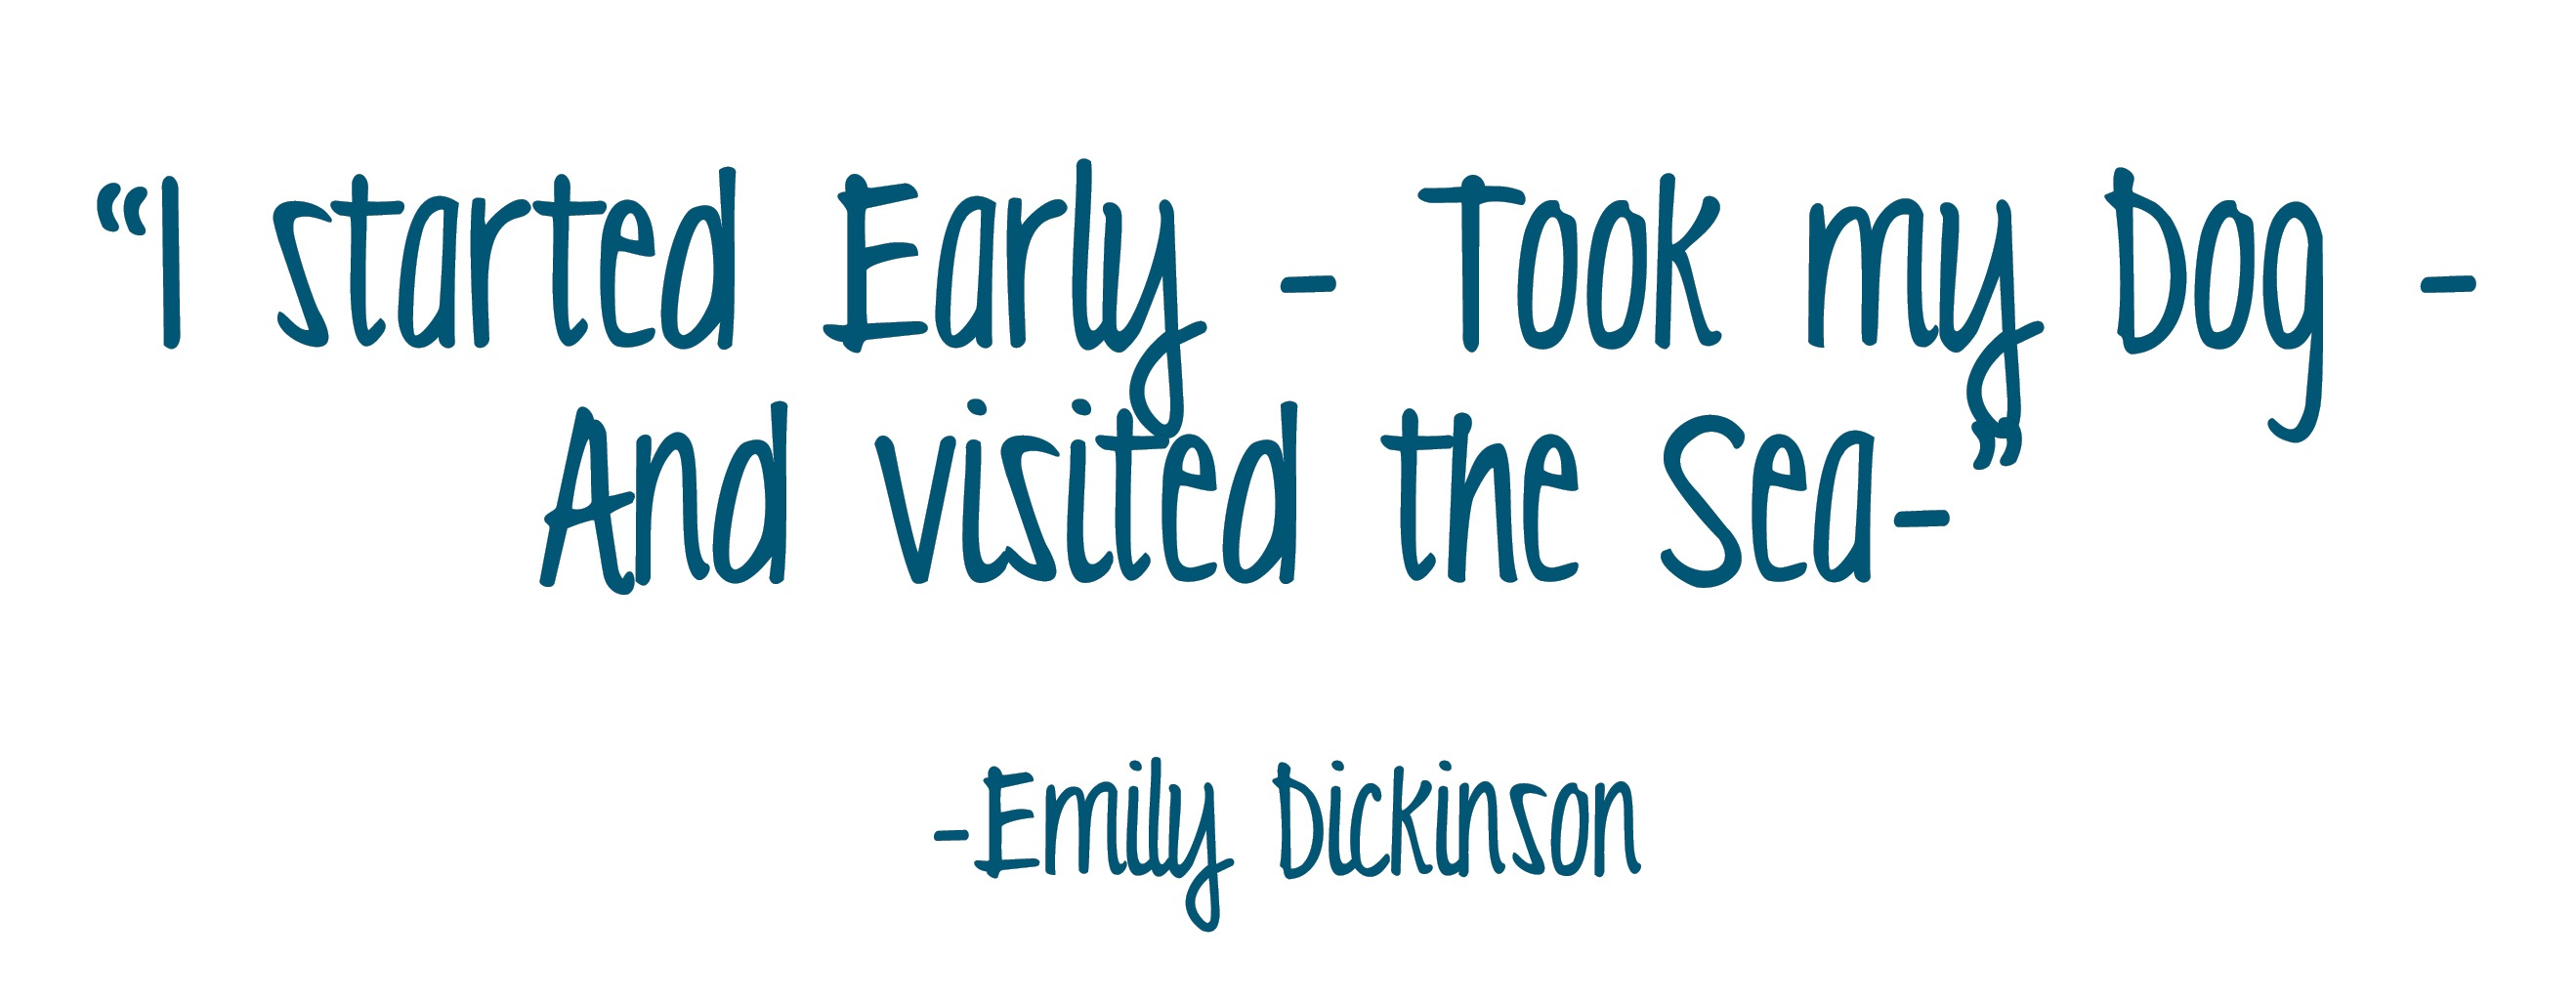 emily dickinson expresses the pain in saying goodbye Emily dickinson's poetry about death emily dickinson's poems about death grew out of her reactions to the tragic events in her personal life in three of her poems, her style of writing reflects her way of life.